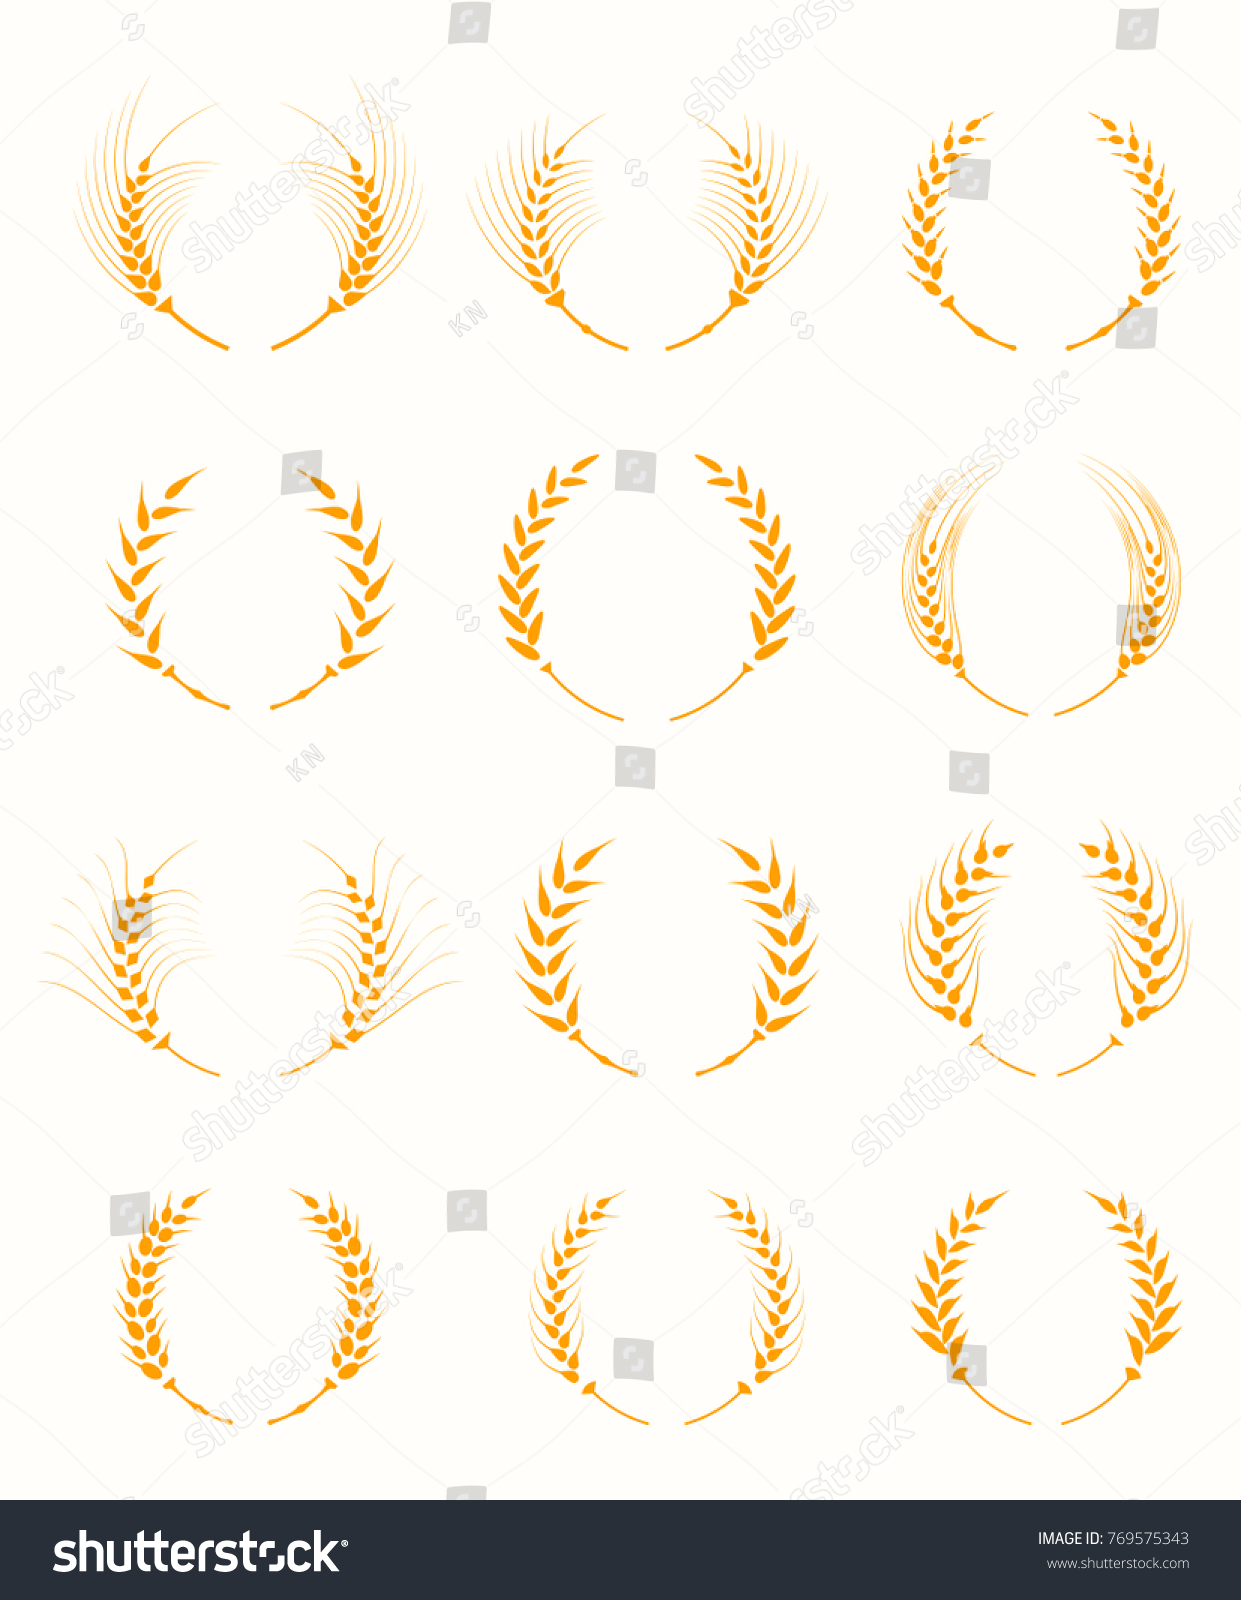 Agricultural symbols isolated on white background stock illustration agricultural symbols isolated on white background agriculture grain organic plant bread food biocorpaavc Gallery